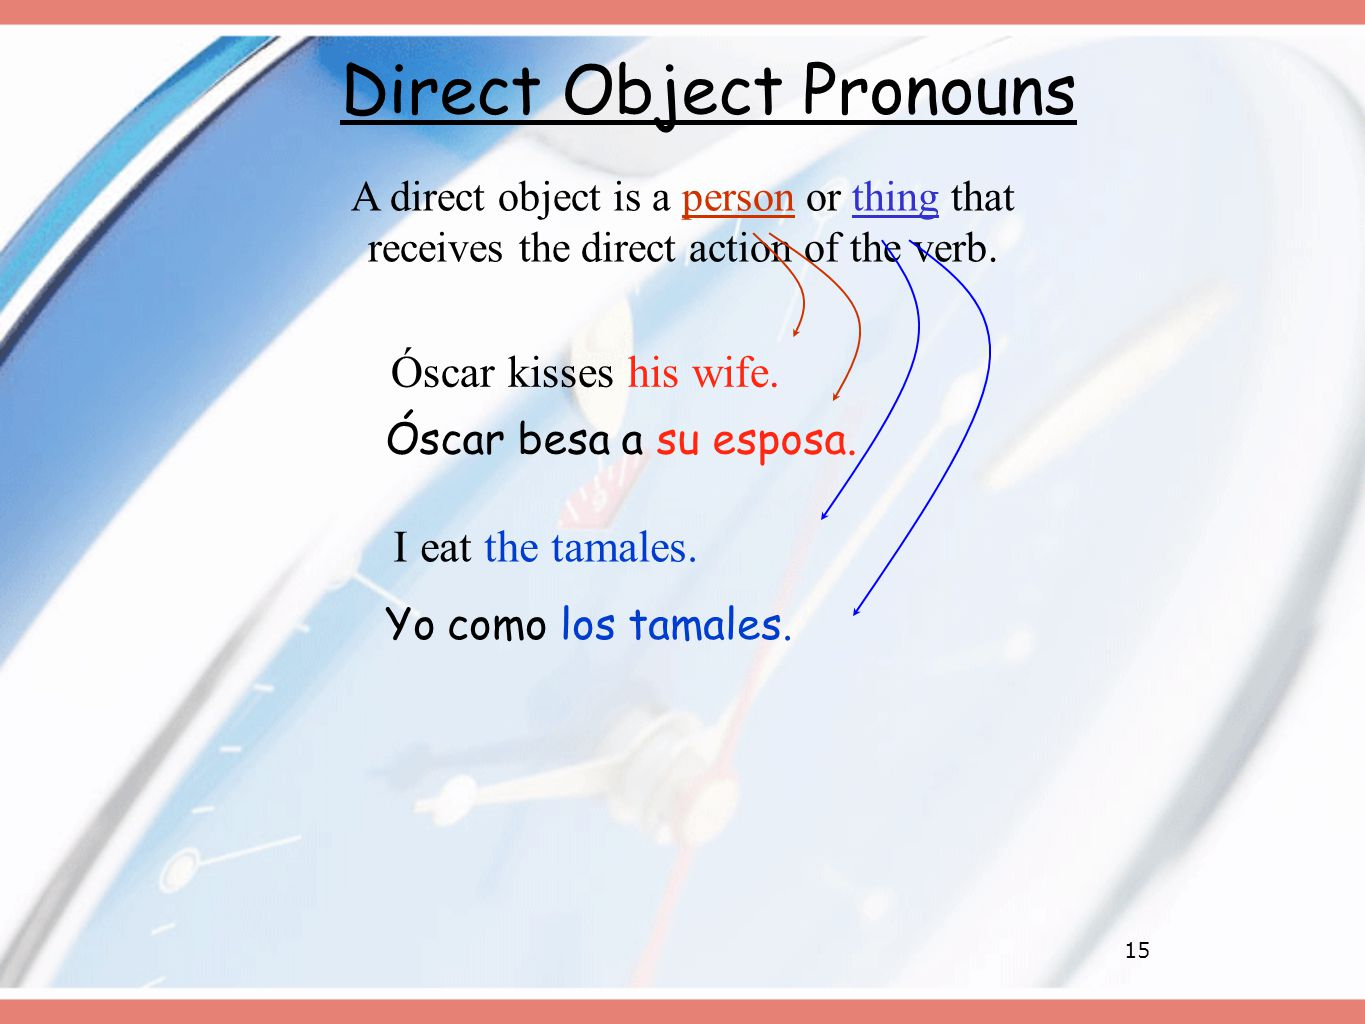 15 Direct Object Pronouns A direct object is a person or thing that receives the direct action of the verb.